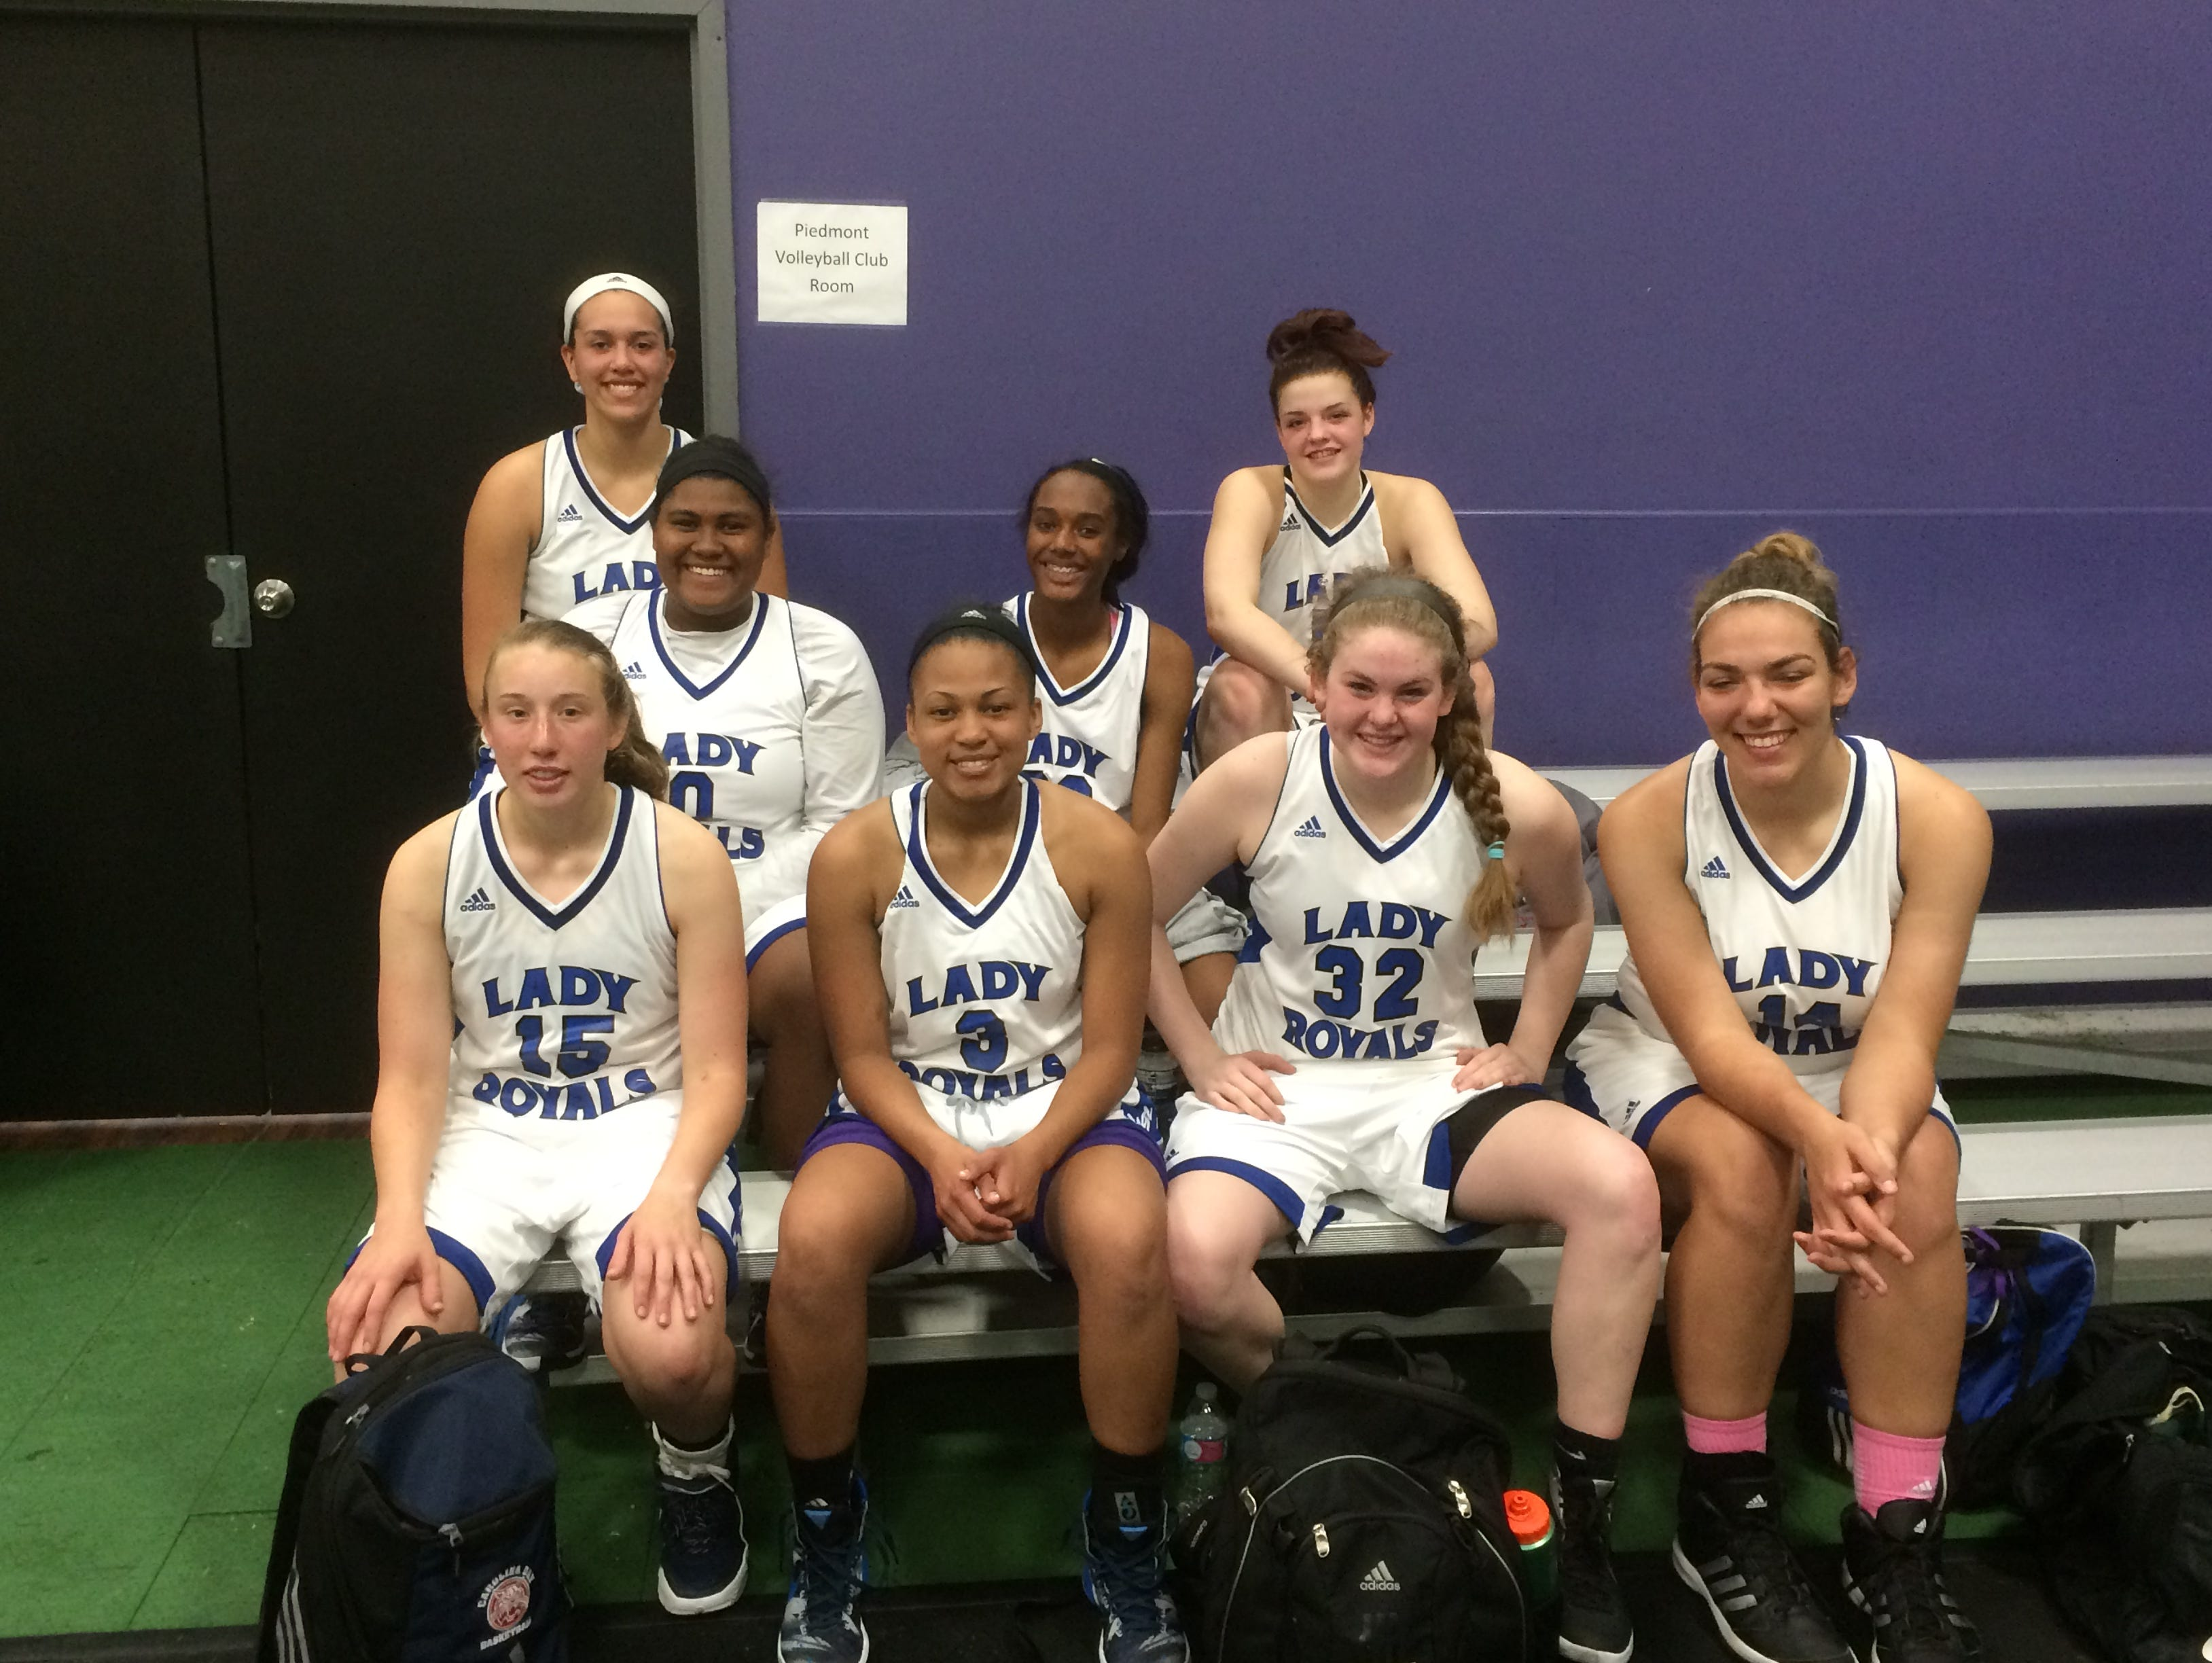 The WNC Lady Royals 11th grade basketball team.